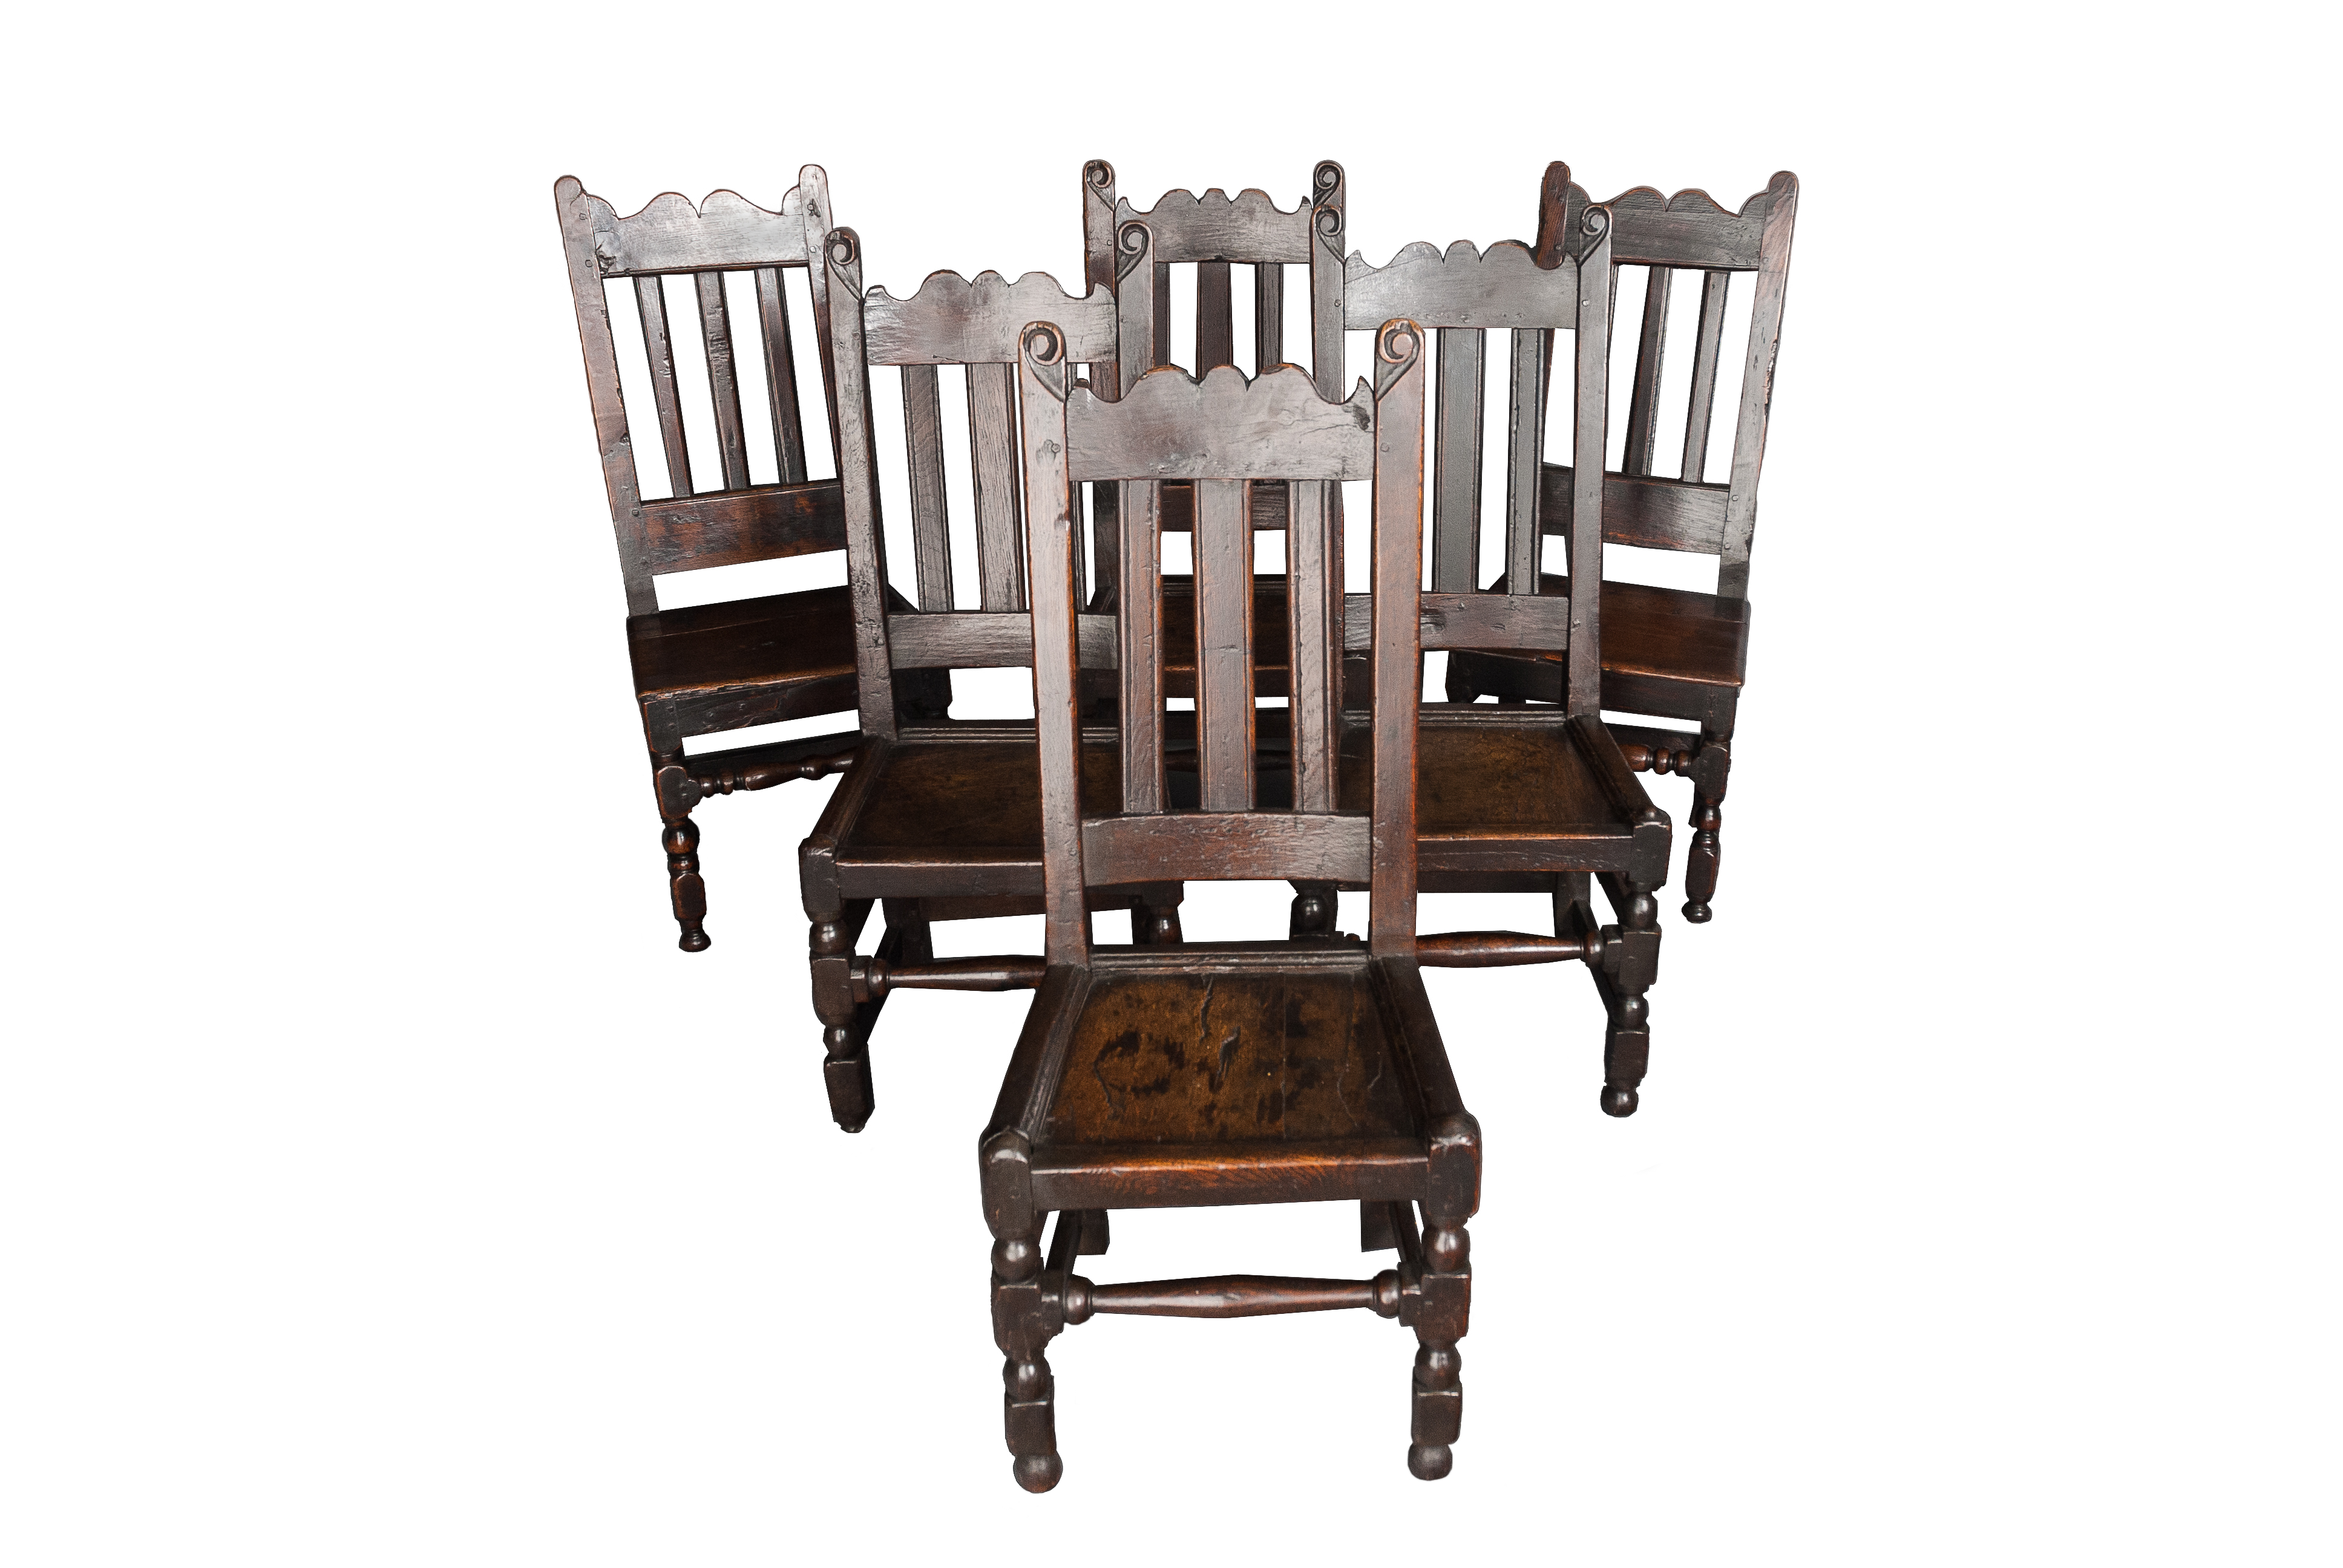 A set of 17th. century Oak chairs